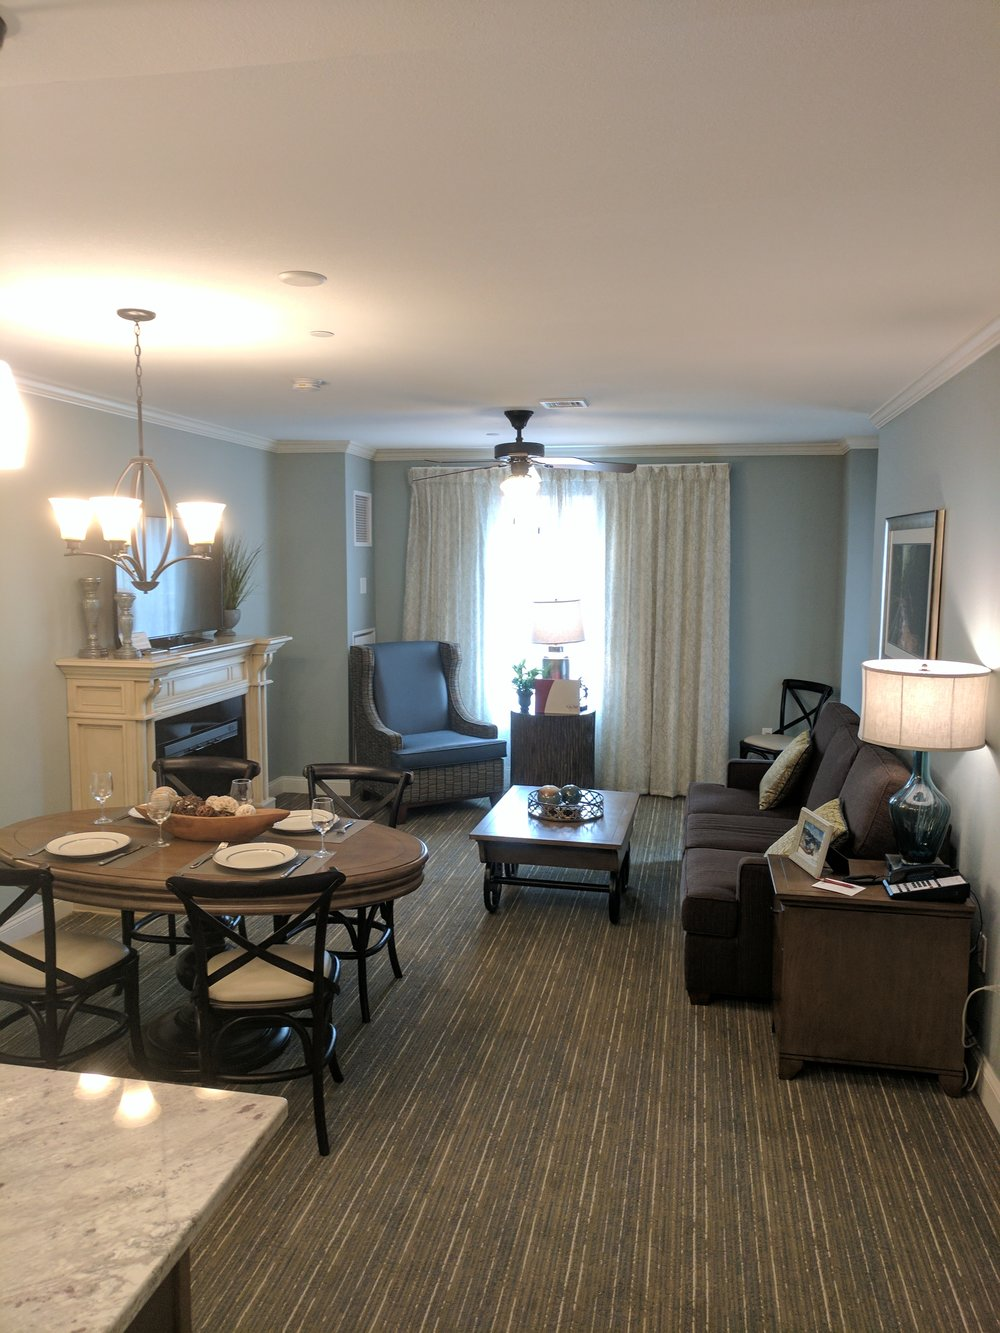 Our suite's open floor plan